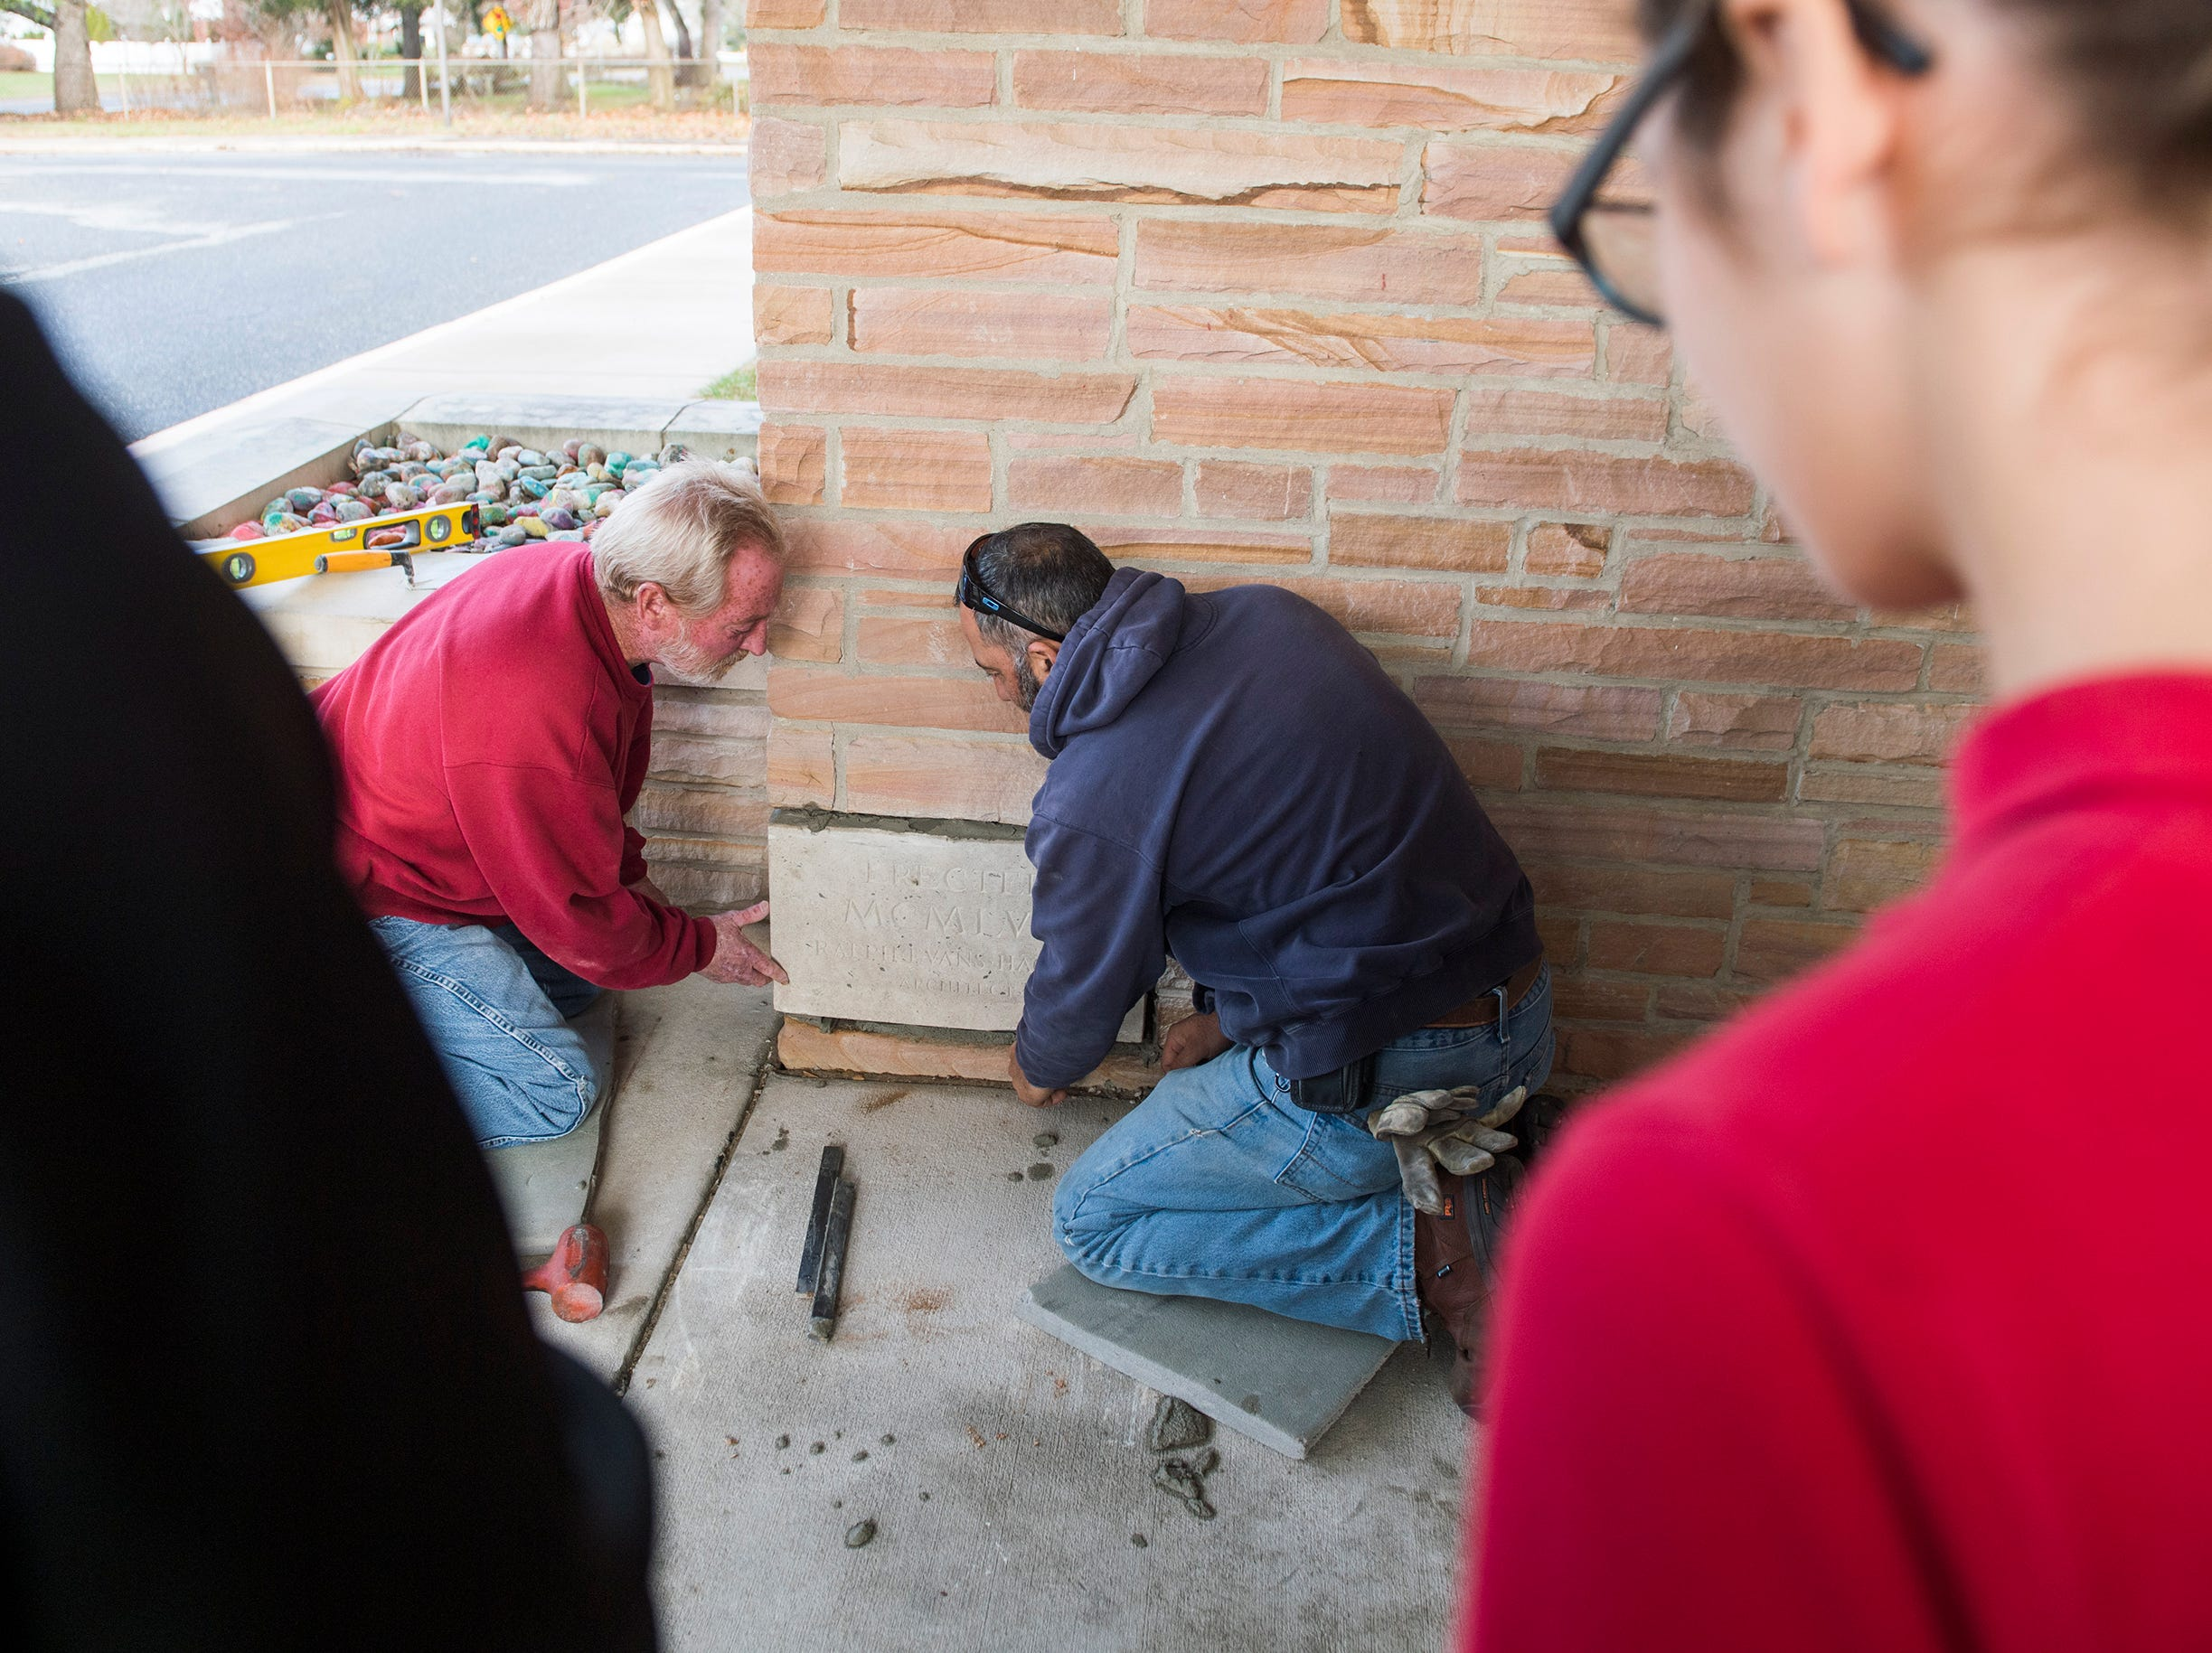 The cornerstone is put back in place after modern additions were made to a time capsule from 1957 Monday, Dec. 3, 2018 at Johnstone Elementary School in Vineland, N.J.